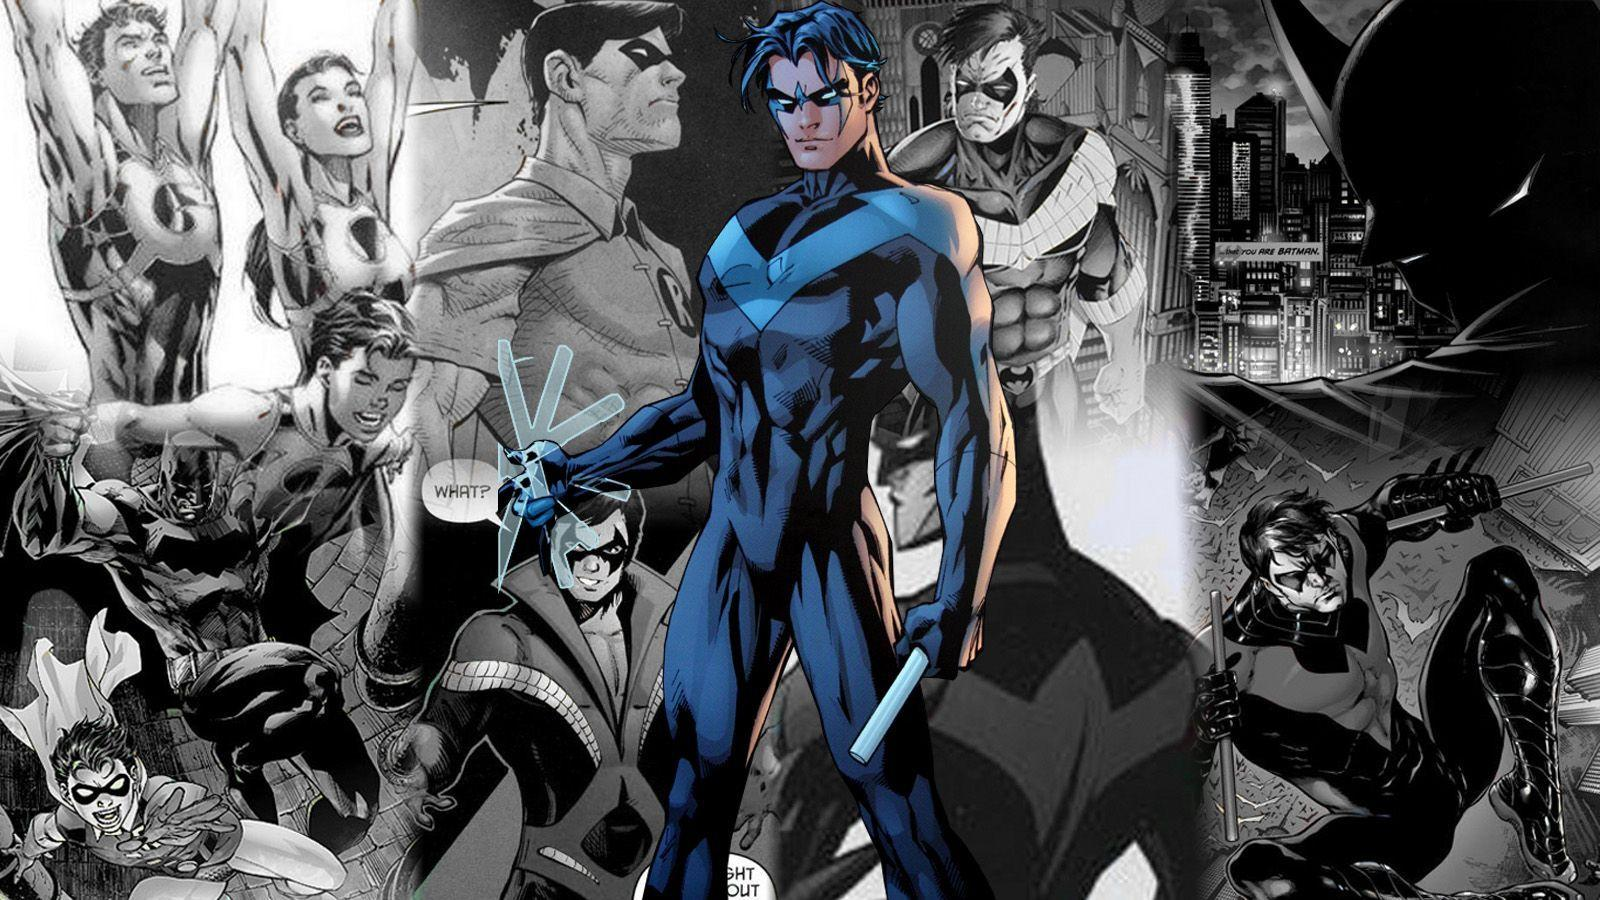 Dick Grayson screenshots, image and pictures